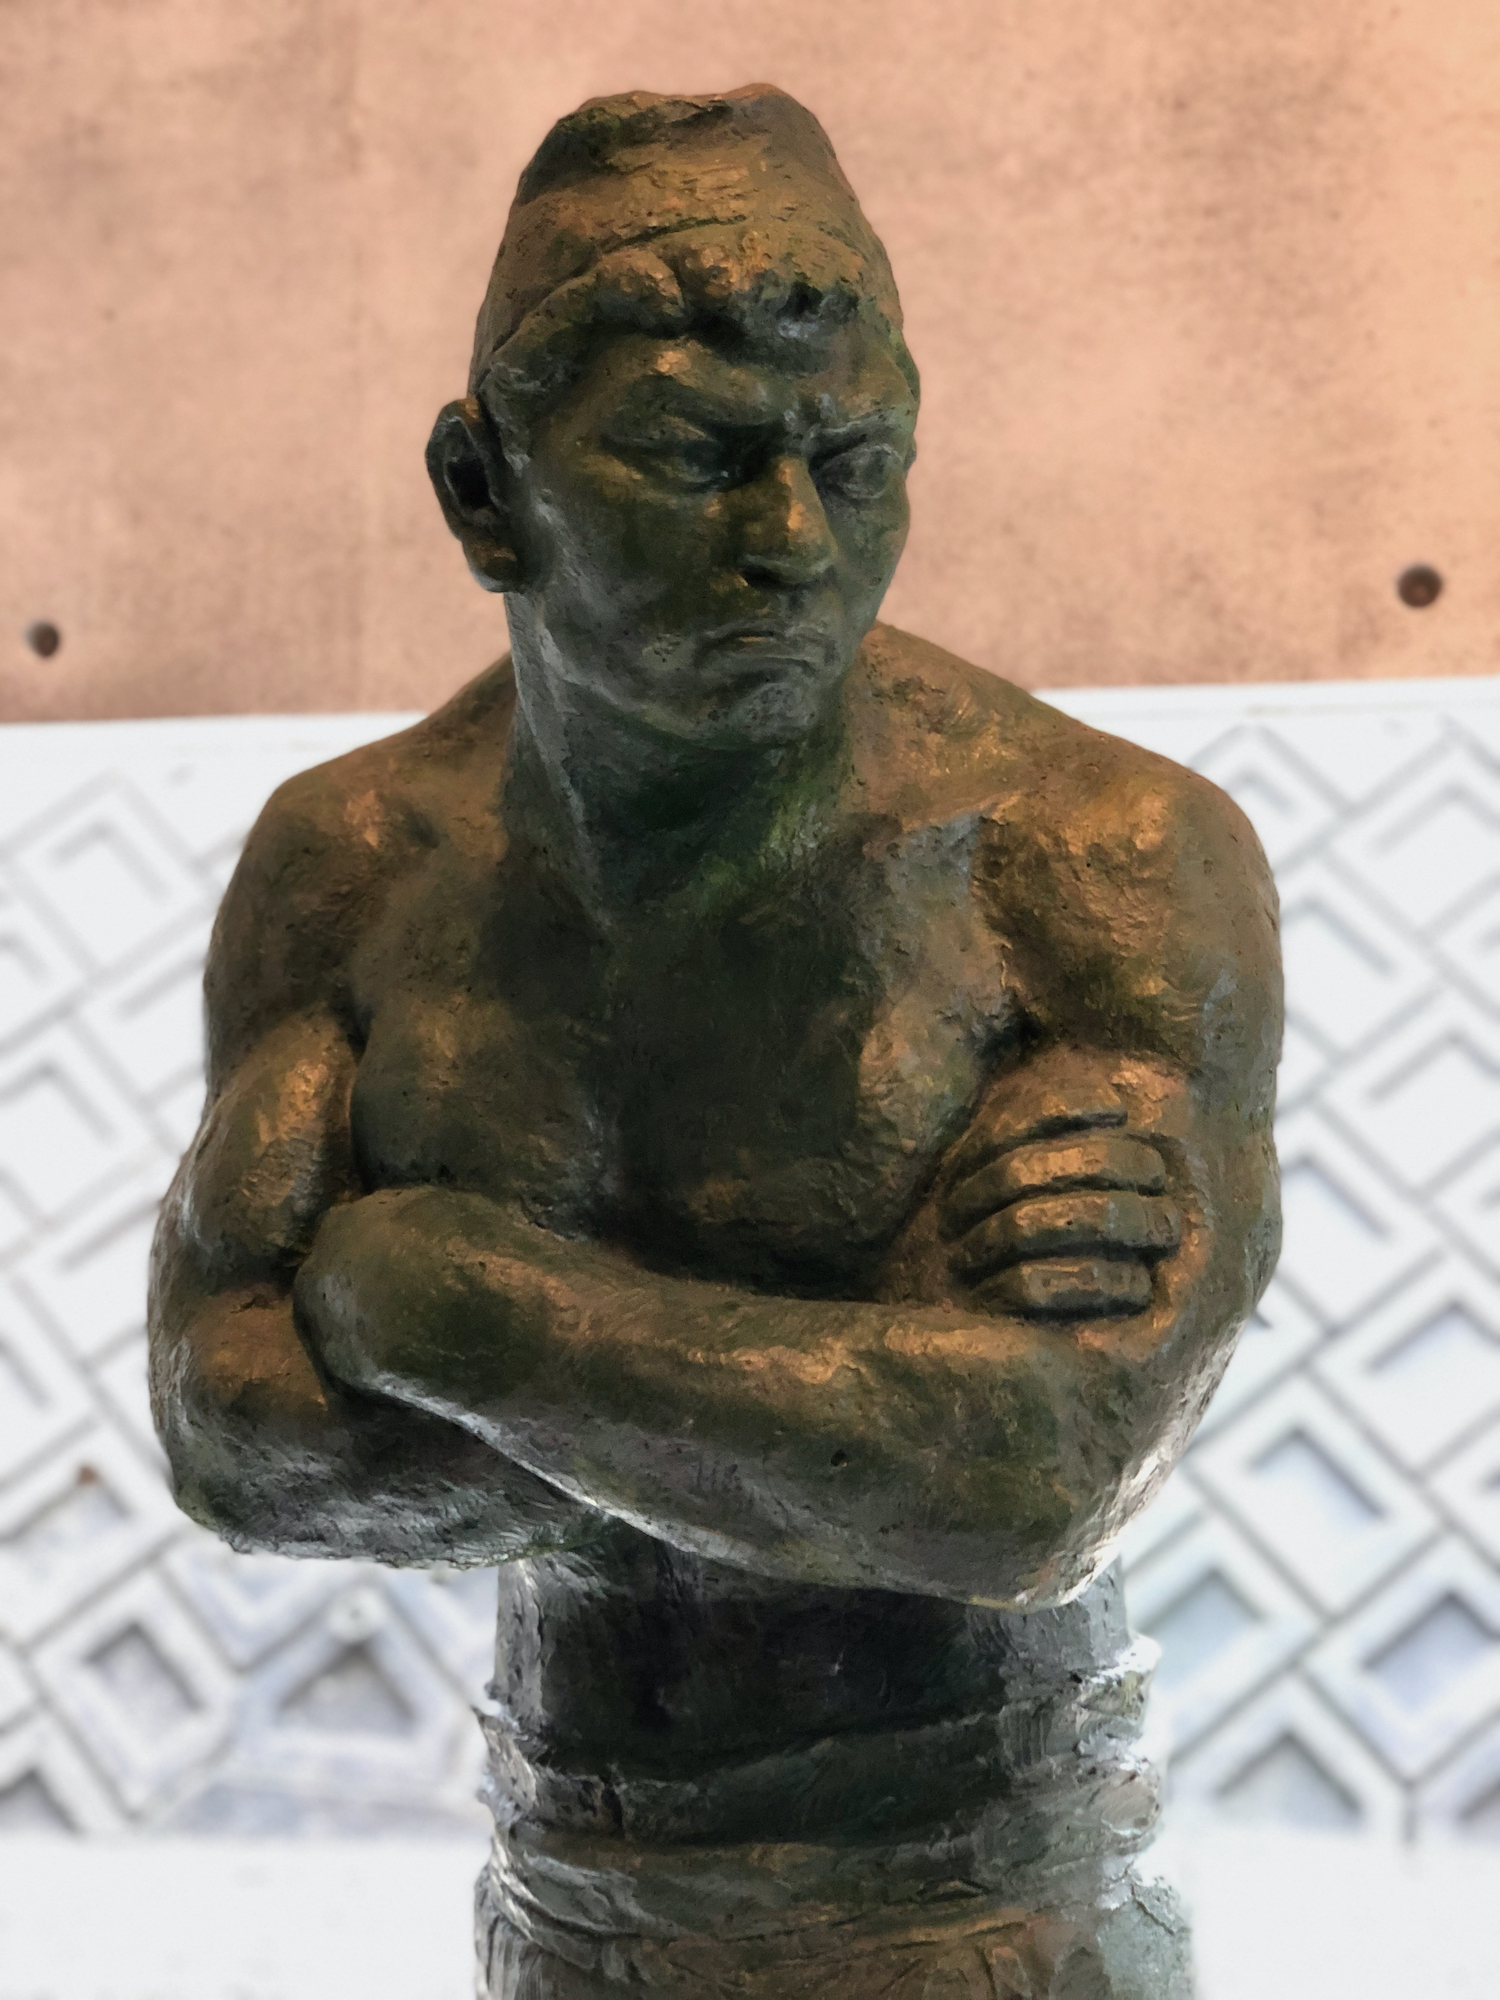 Statue of muscular man with angry face